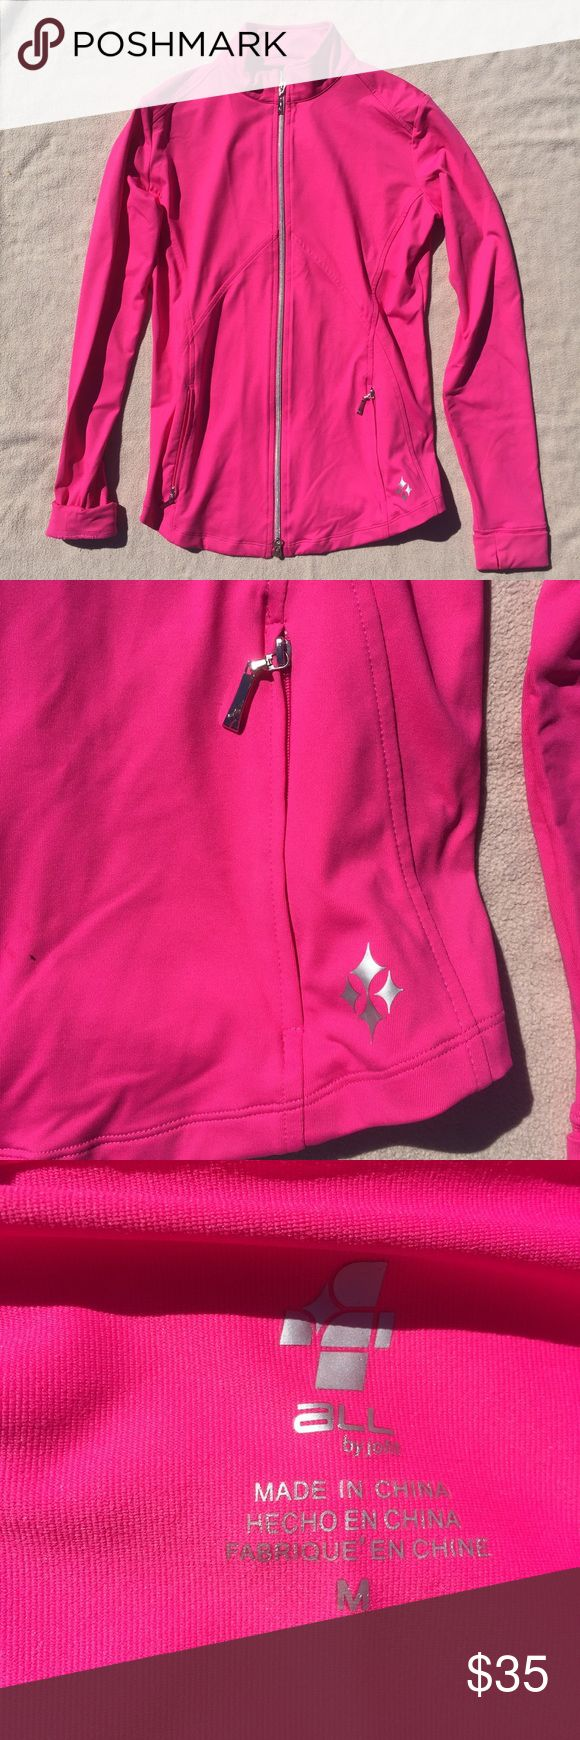 Jofit Thermal Jacket Pink Jofit Thermal Jacket, Silver Zip Up with 2 pockets, also with silver zippers. Jofit Jackets & Coats